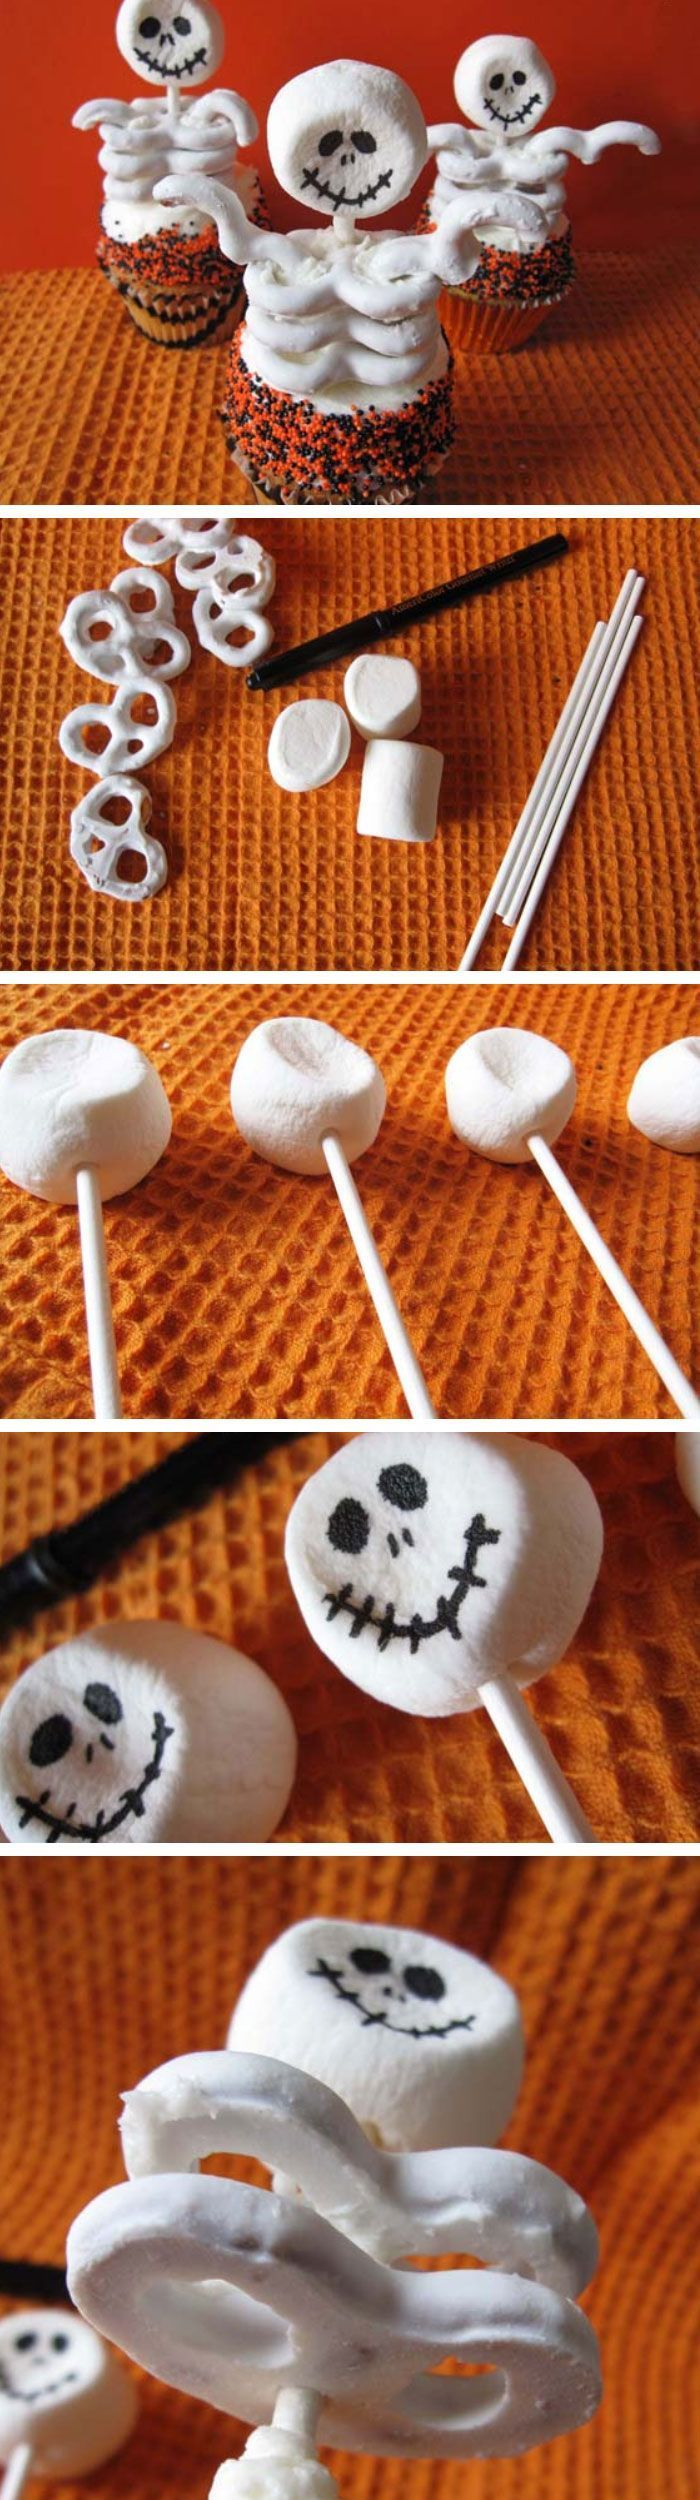 340 best images about Halloween on Pinterest | Costume makeup ...